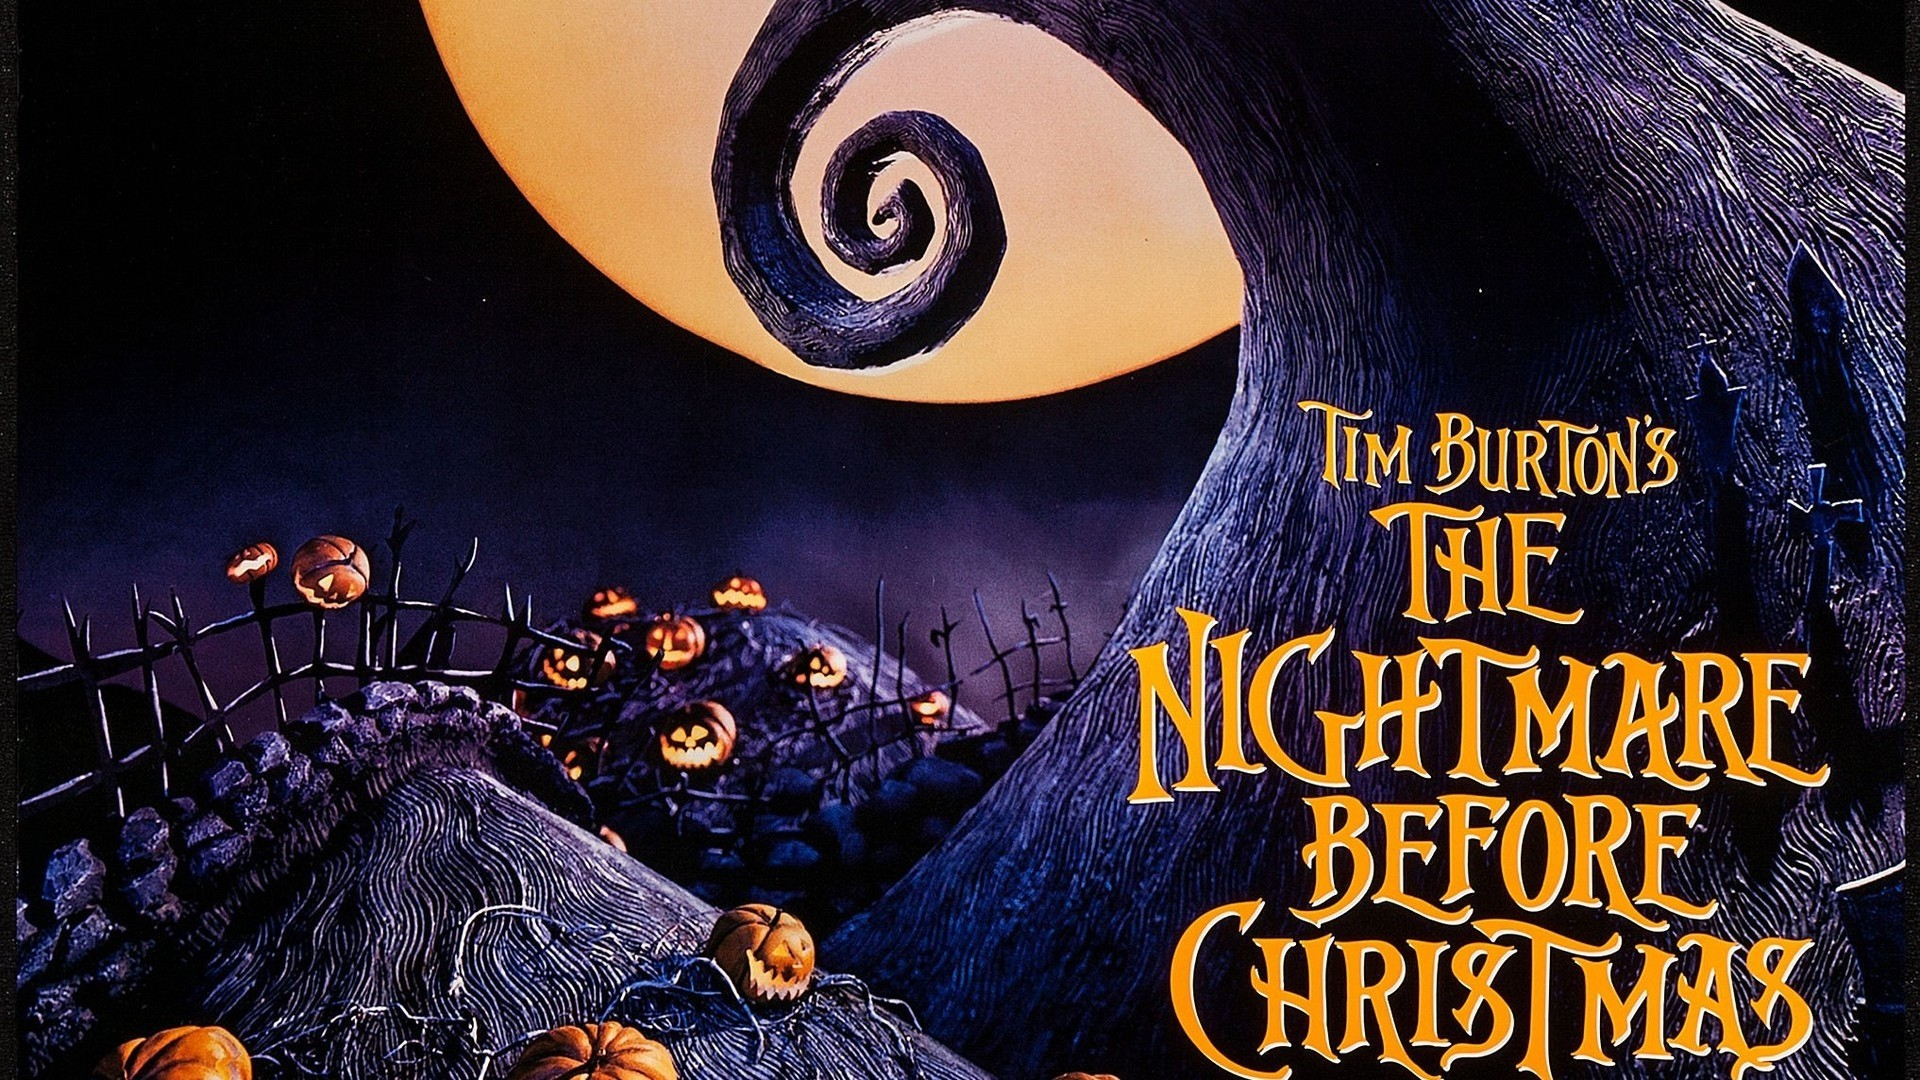 … The Nightmare Before Christmas Wallpaper The nightmare before christmas  movie posters wallpapers Nightmare Before Christmas Wallpapers Jack  Skellington …